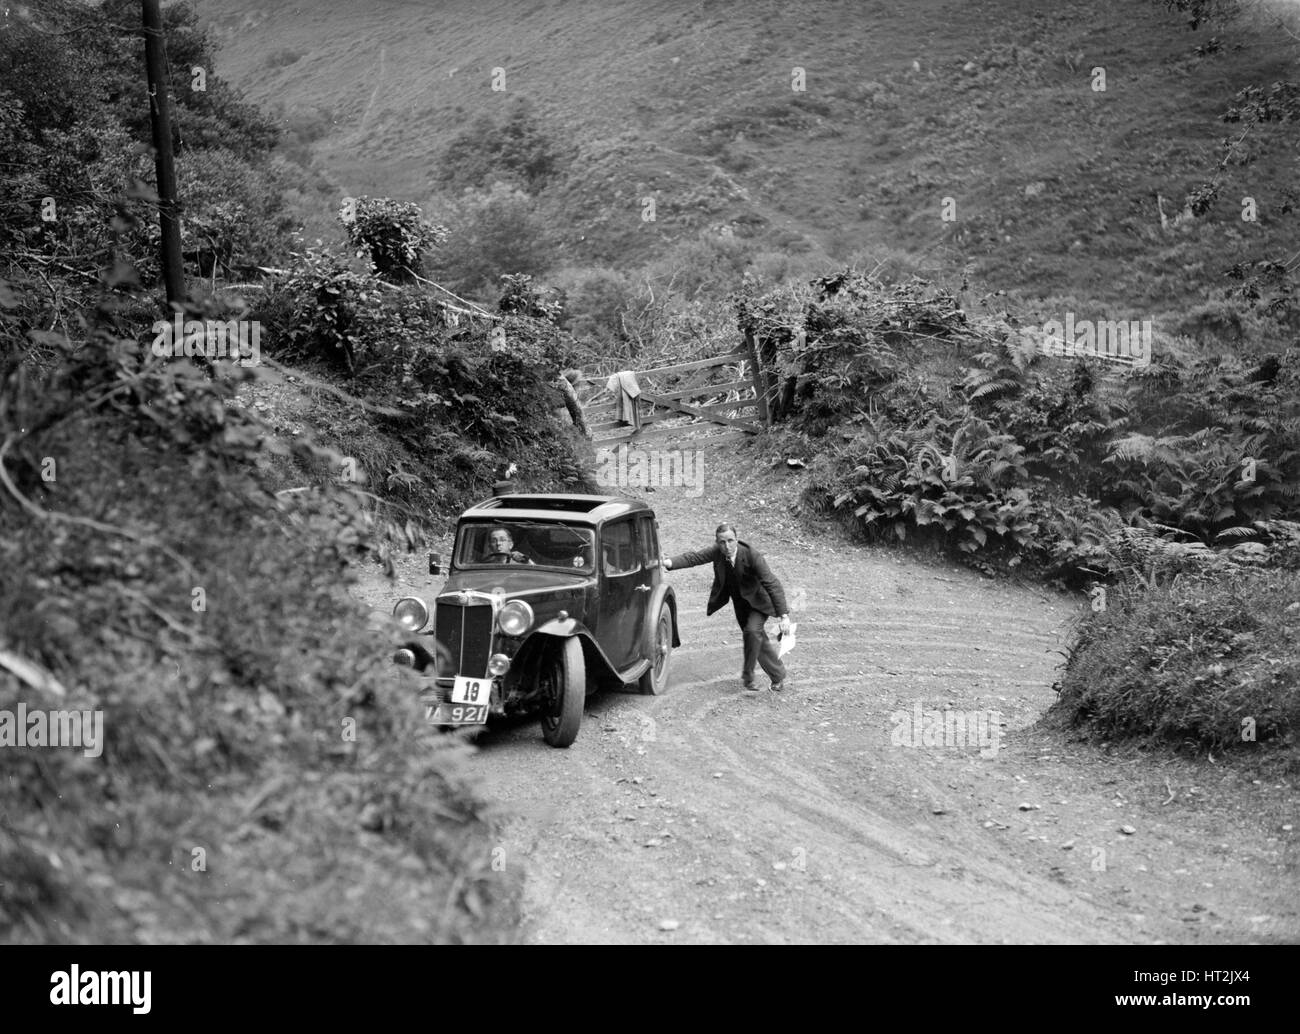 MG Magnette taking part in a motoring trial, late 1930s. Artist: Bill Brunell. - Stock Image